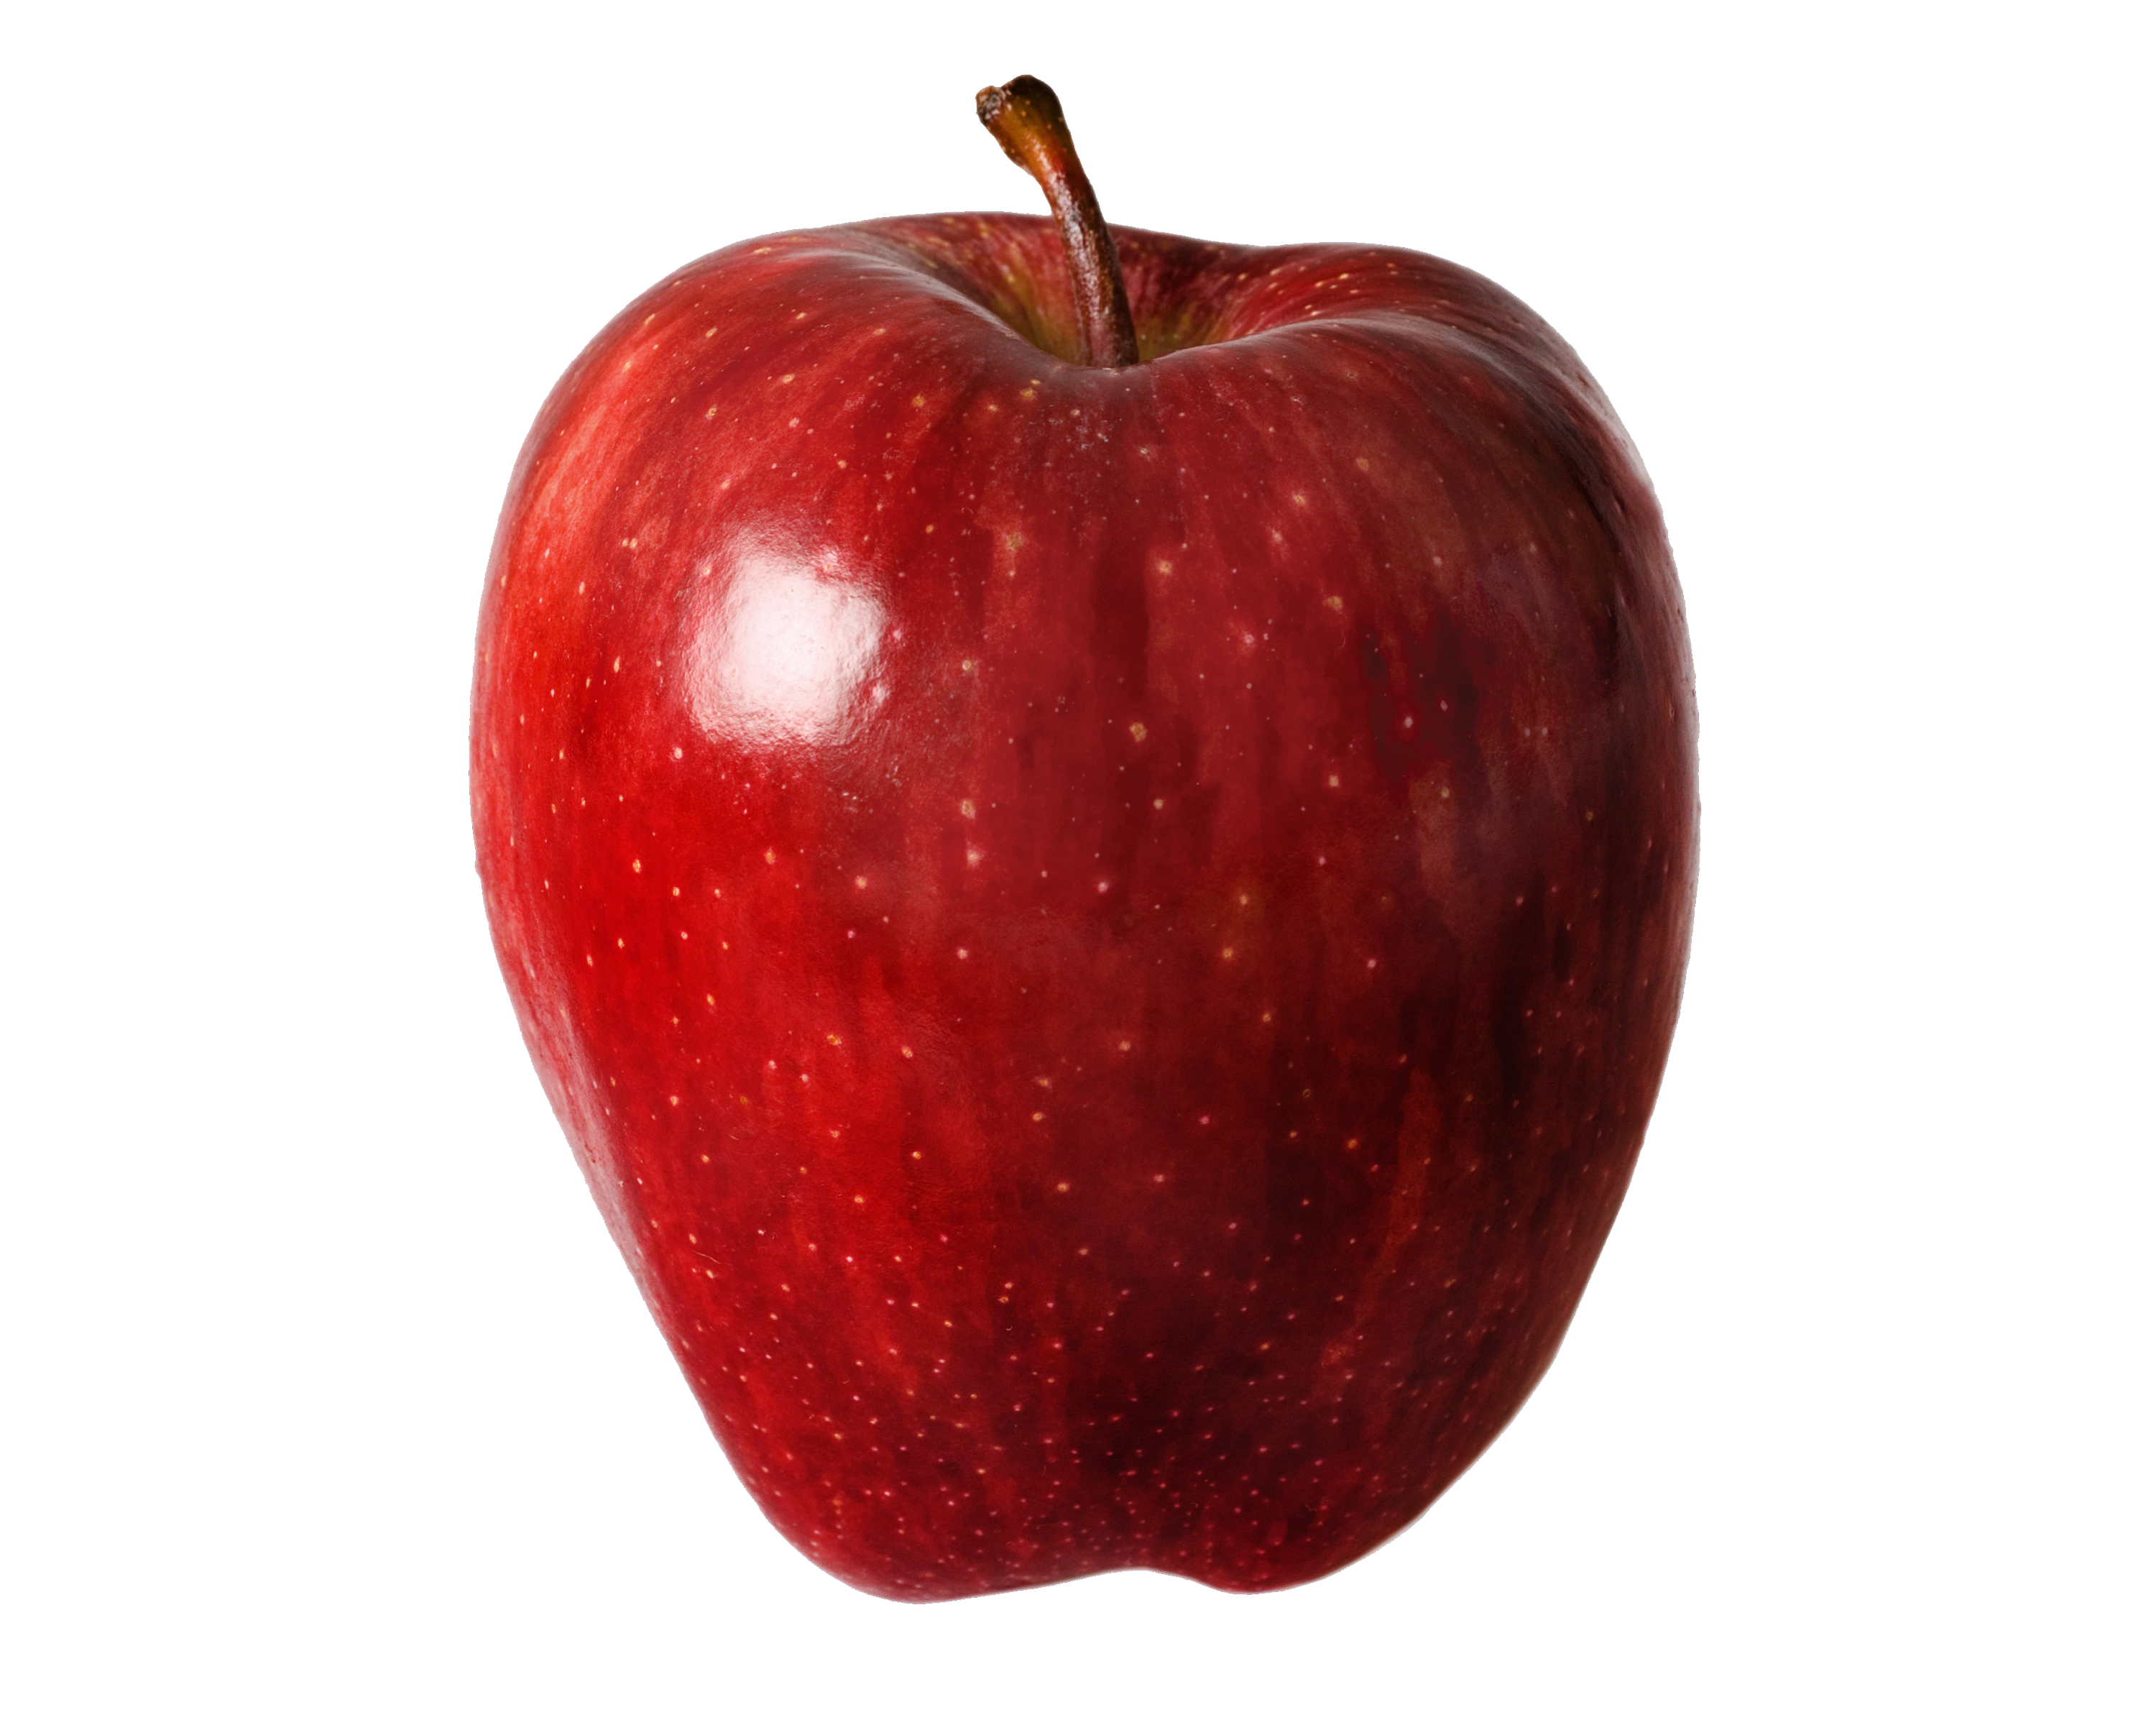 vector transparent download Vector apples healthy. Red apple food fruit